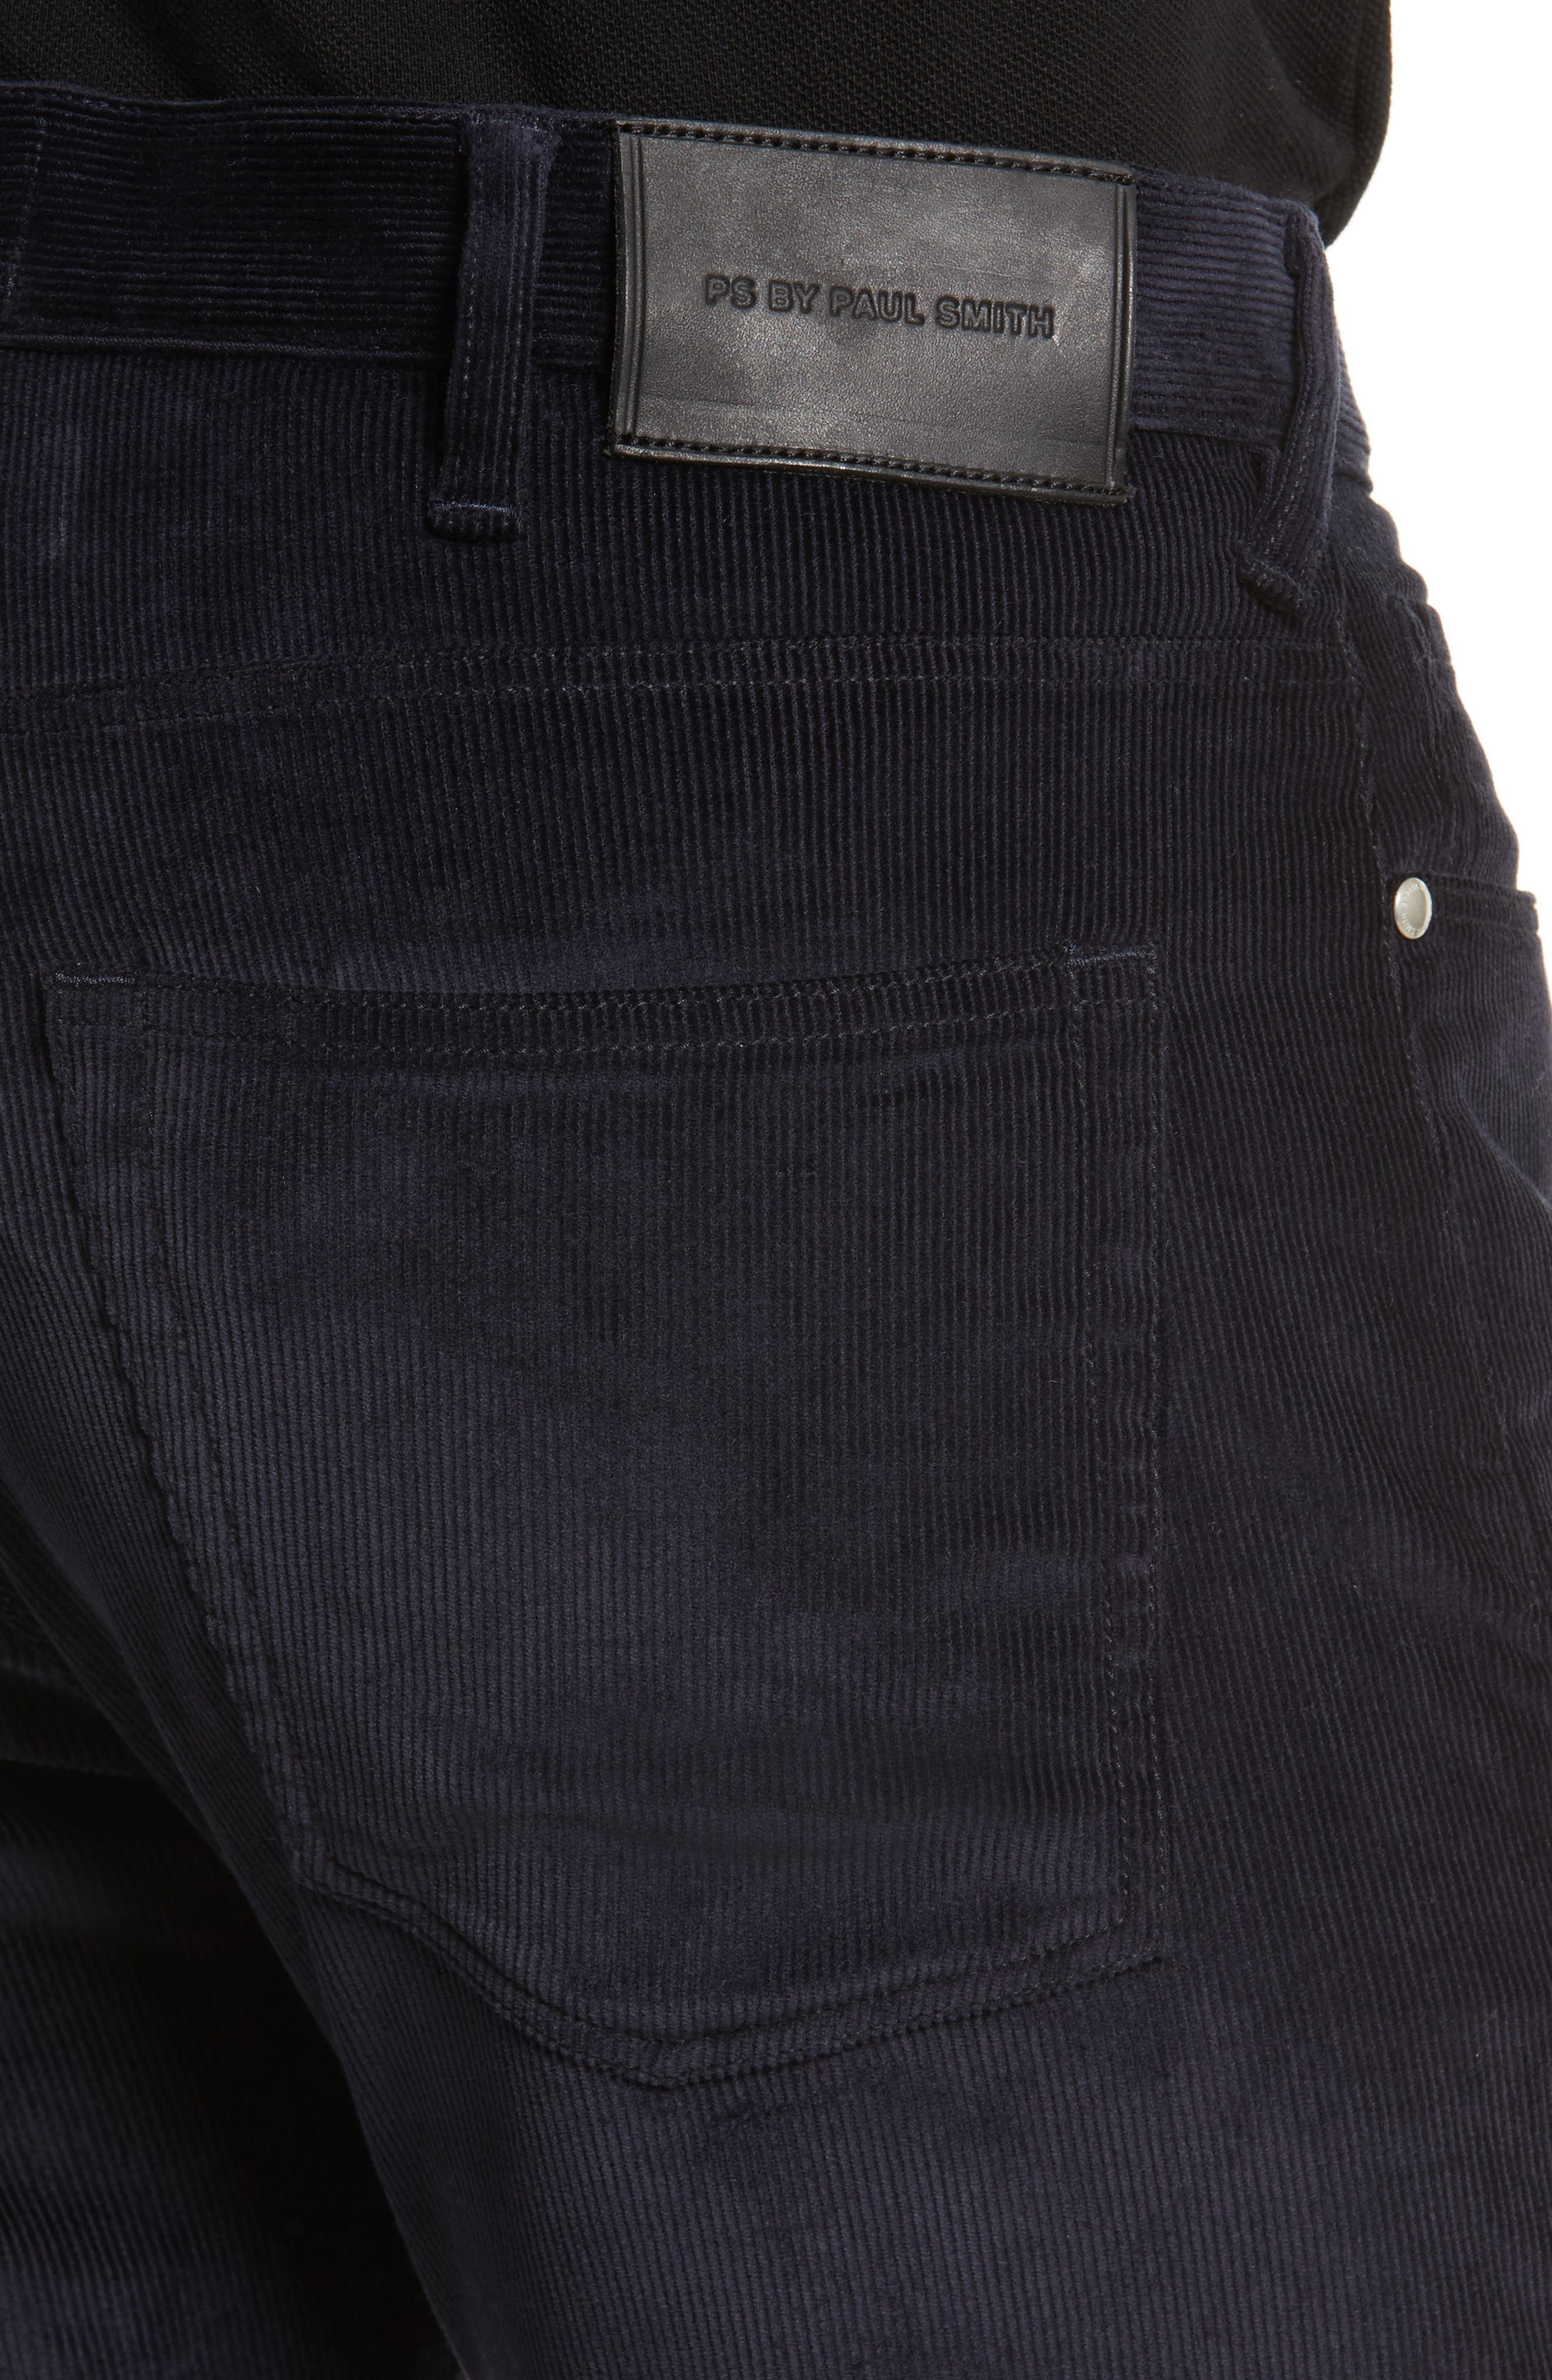 Tapered Fit Corduroy Pants,                             Alternate thumbnail 5, color,                             435